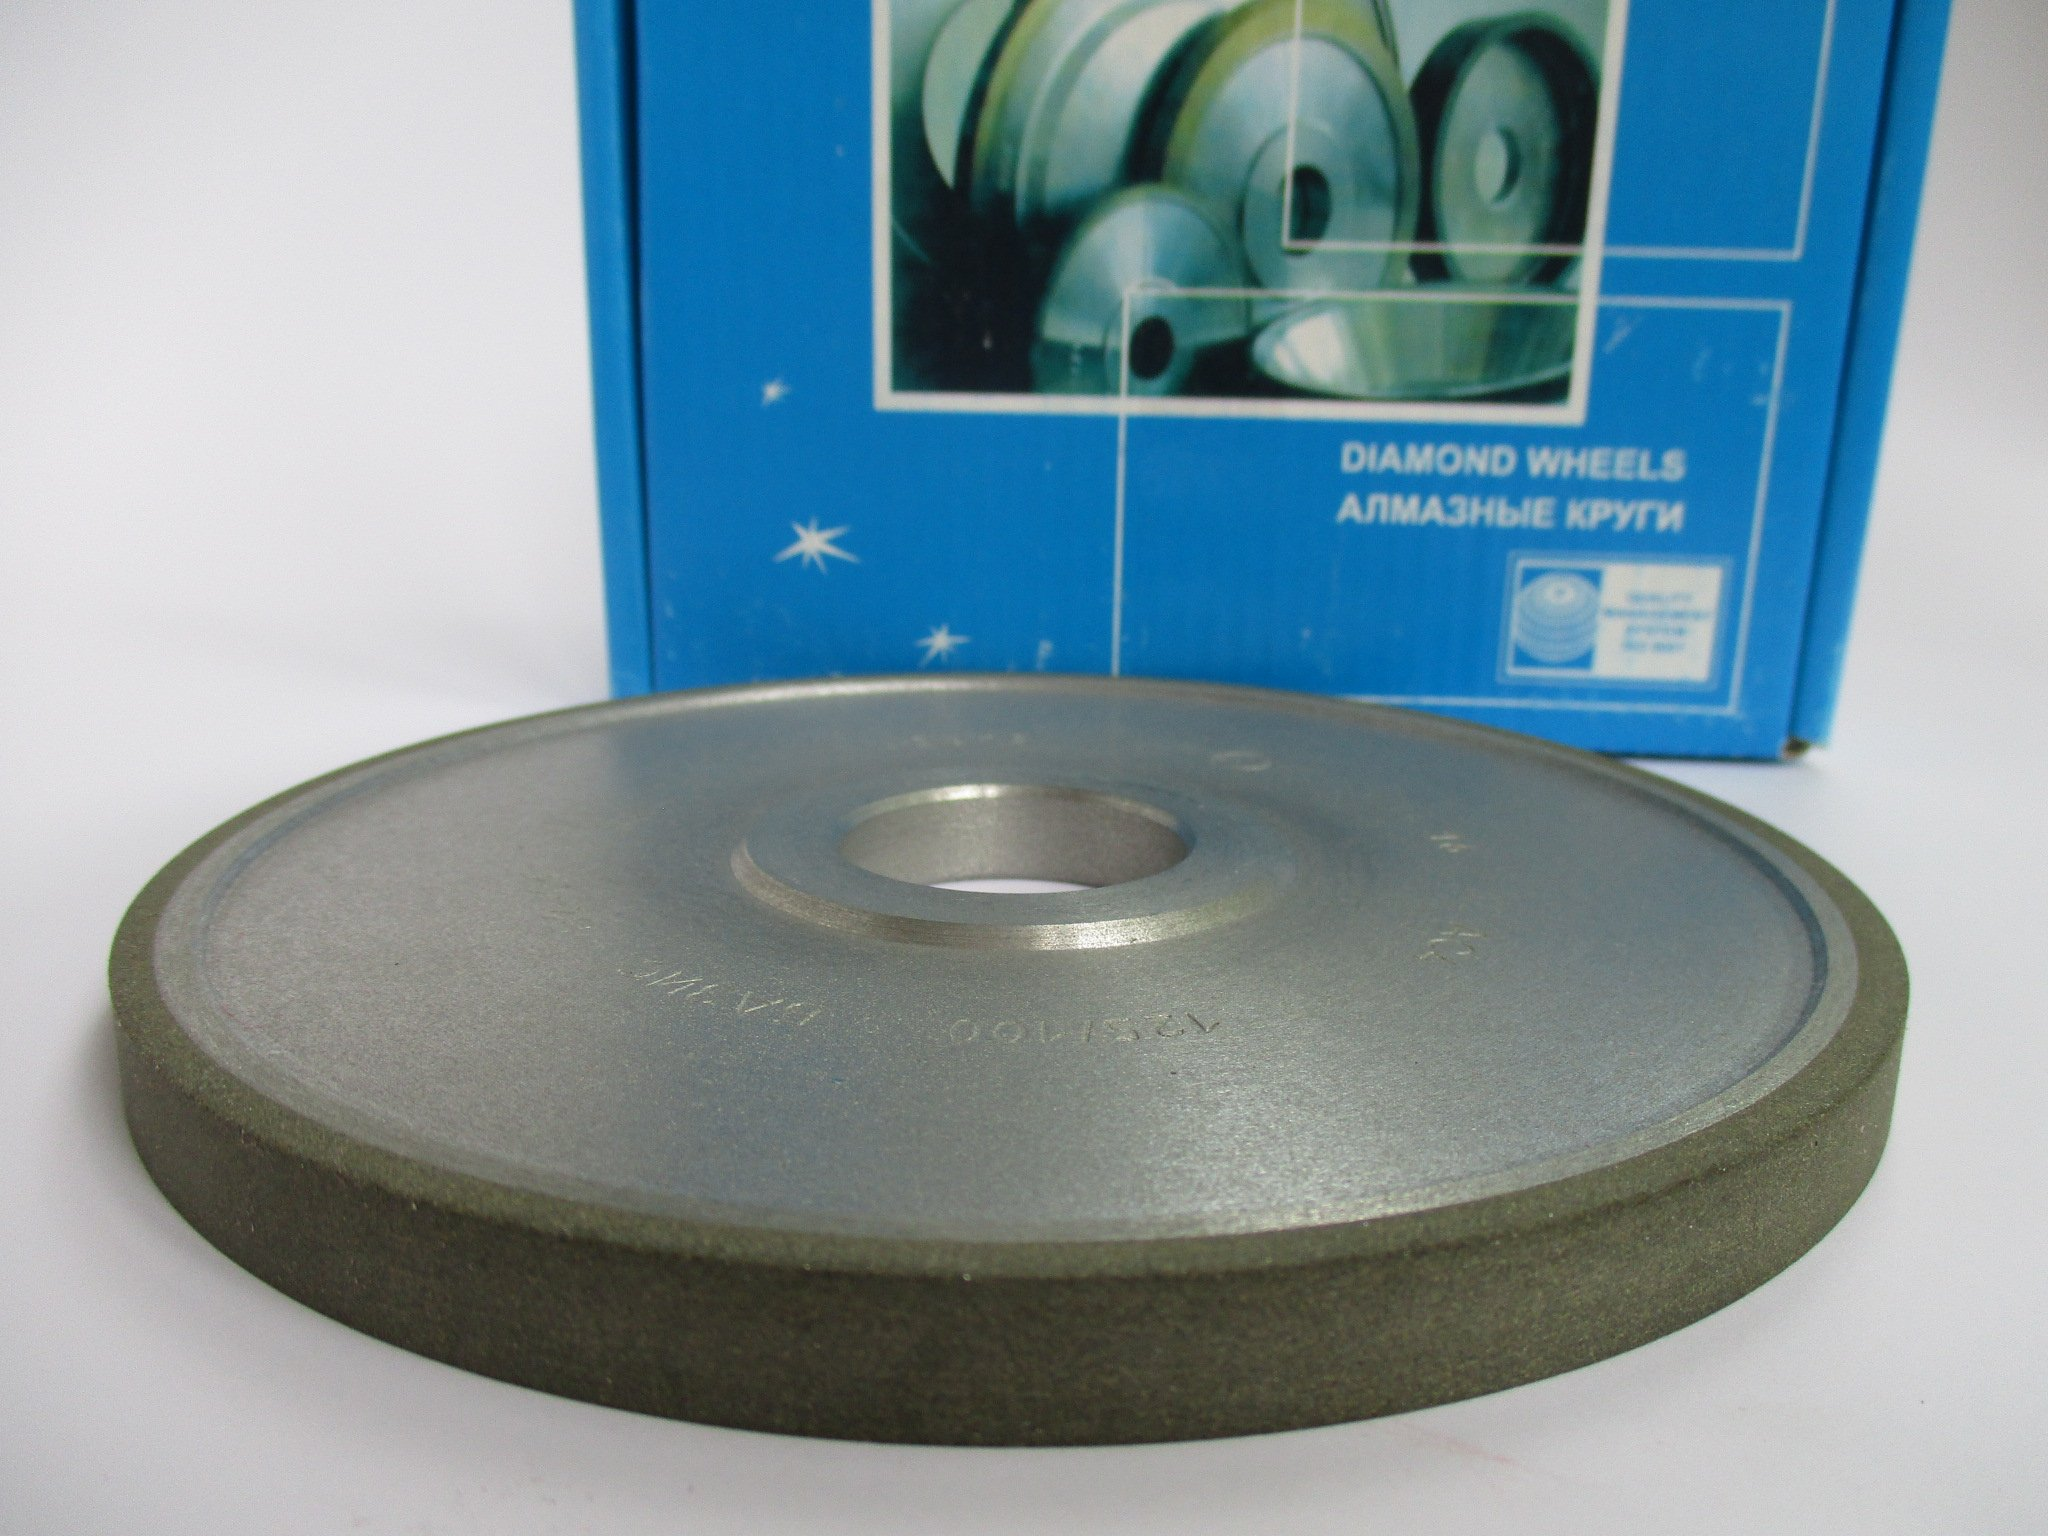 Dia: 6'' (150mm.) Hole: 1.26'' (32mm.) Width: 0.4'' (10mm.) Type: 1A1 Straight Abrasive Diamond Wheel Grinding 125/100micron 150 Mesh (Finish Grinding)